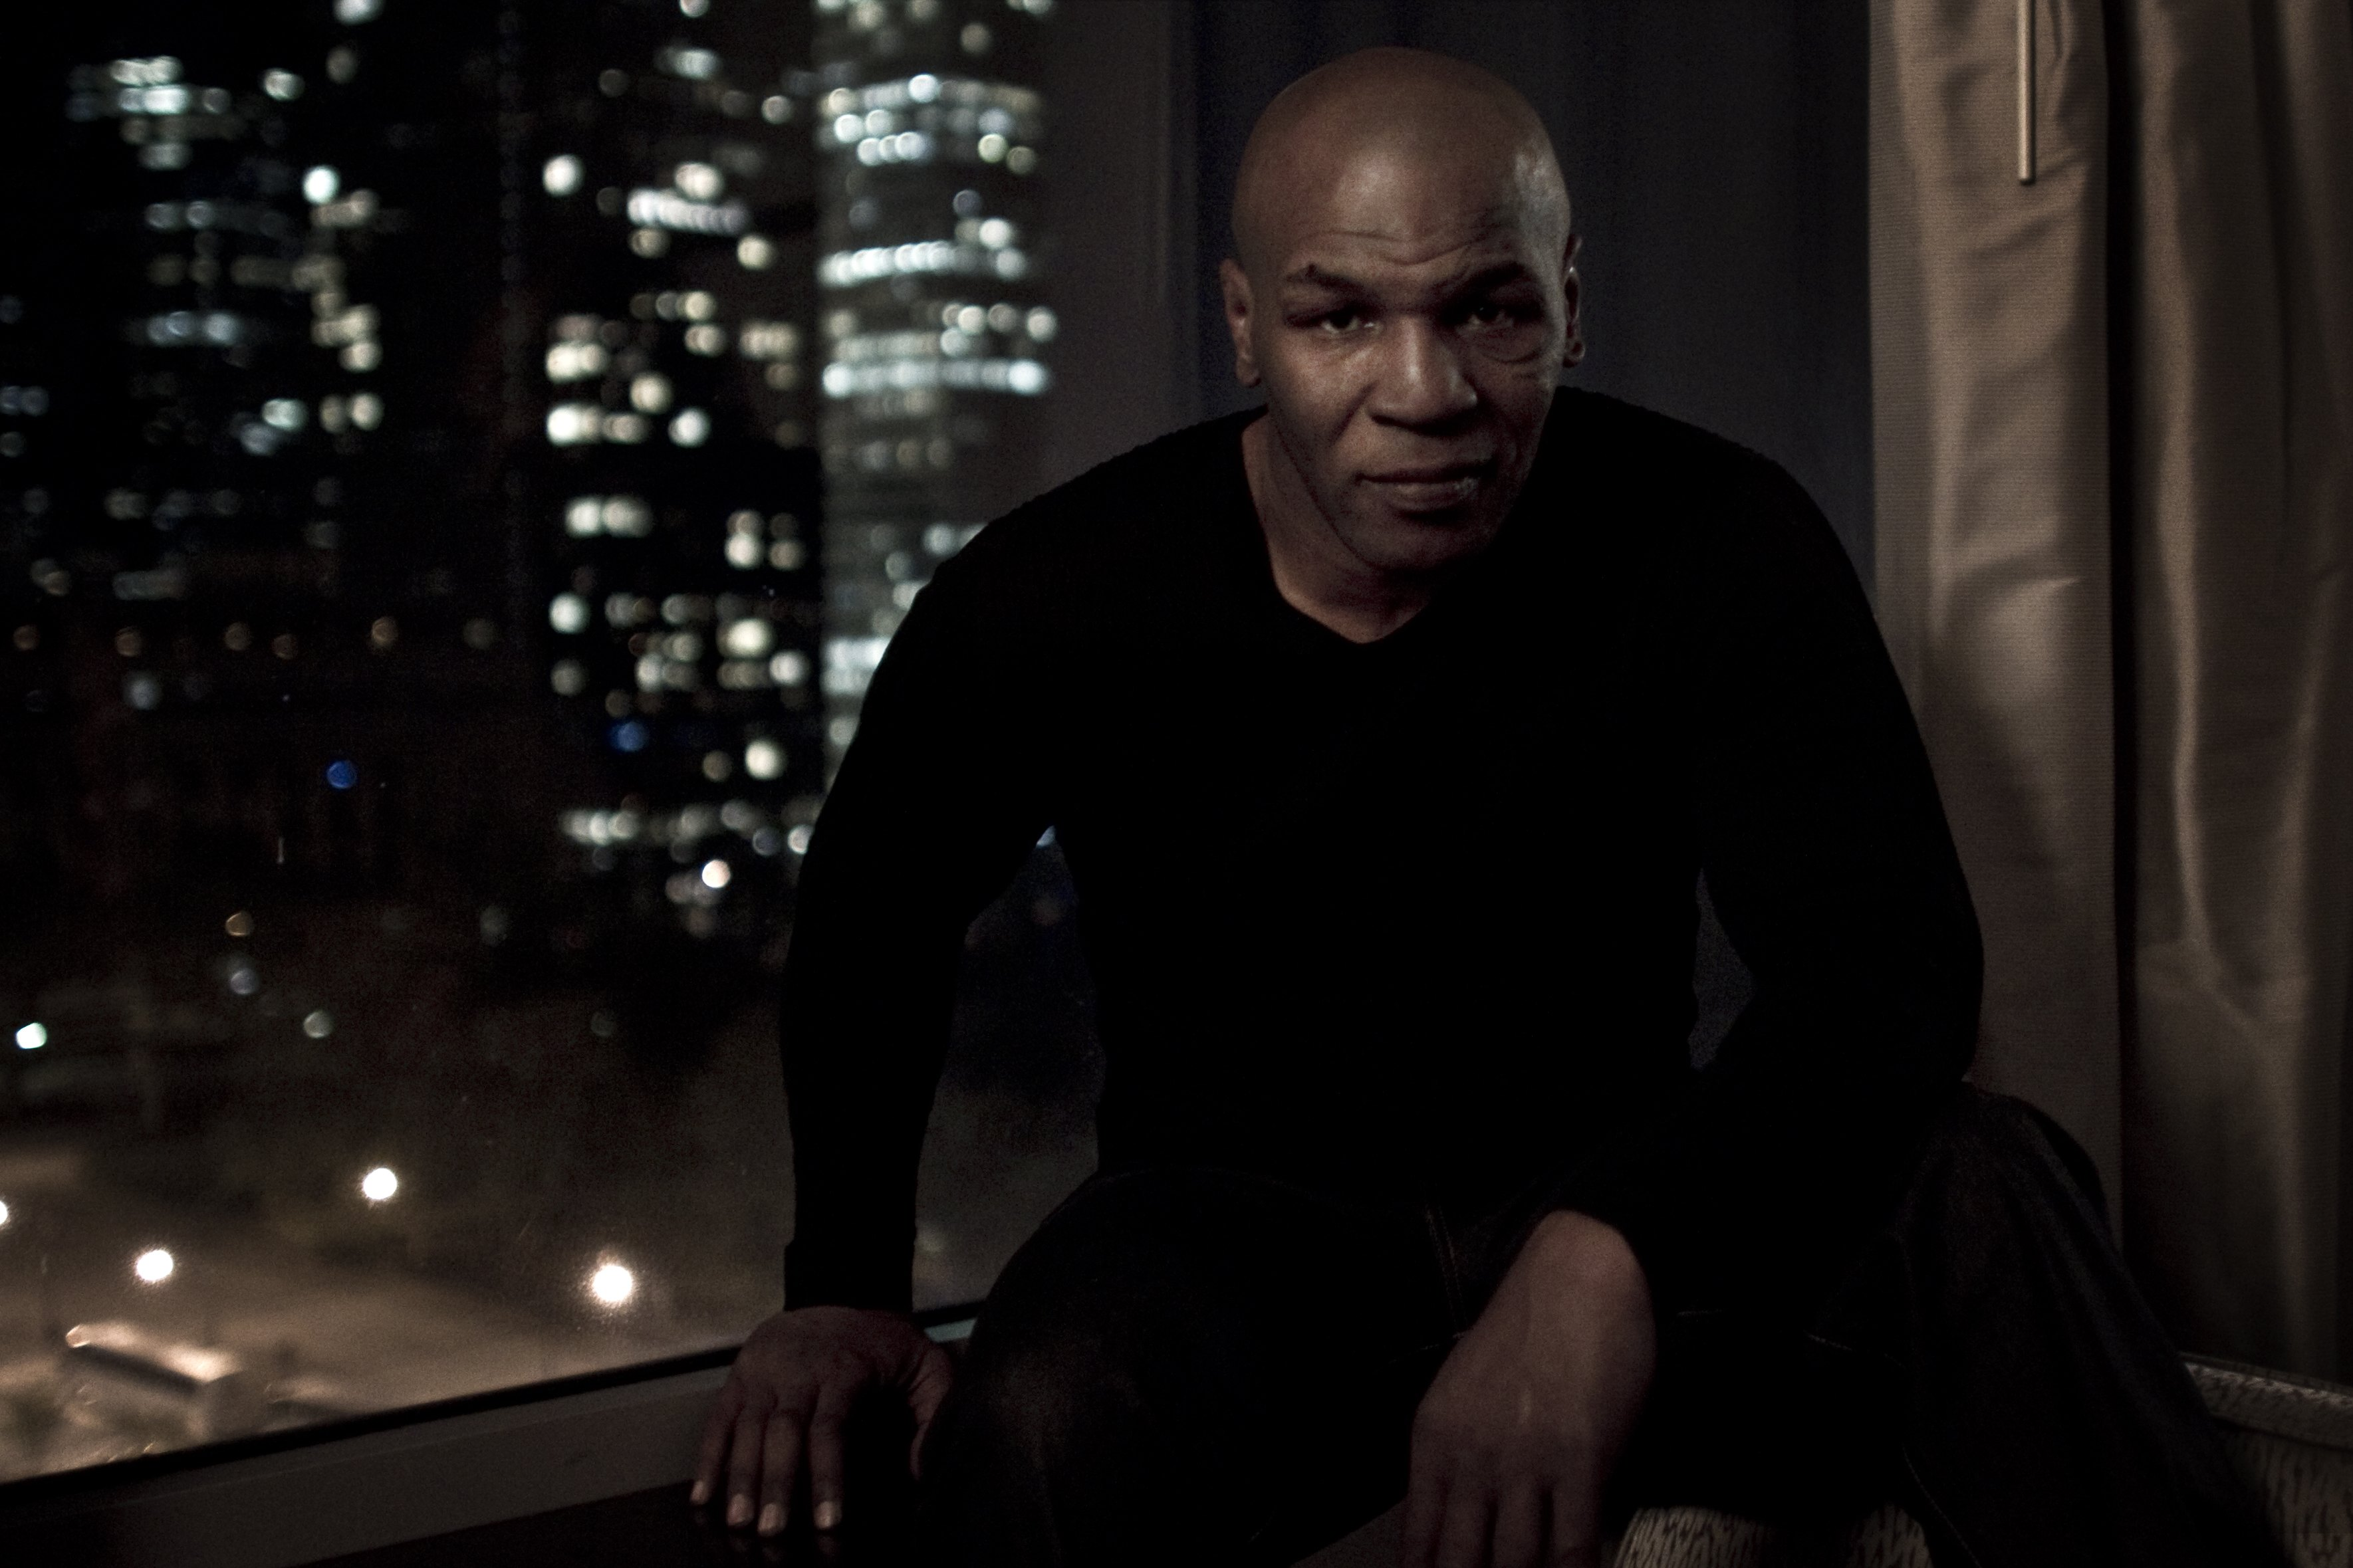 NEW YORK - APRIL 14:  Retired boxer Mike Tyson is photographed at his hotel on April 14, 2010 in New York, New York.  (Photo by Chris McGrath/Getty Images)